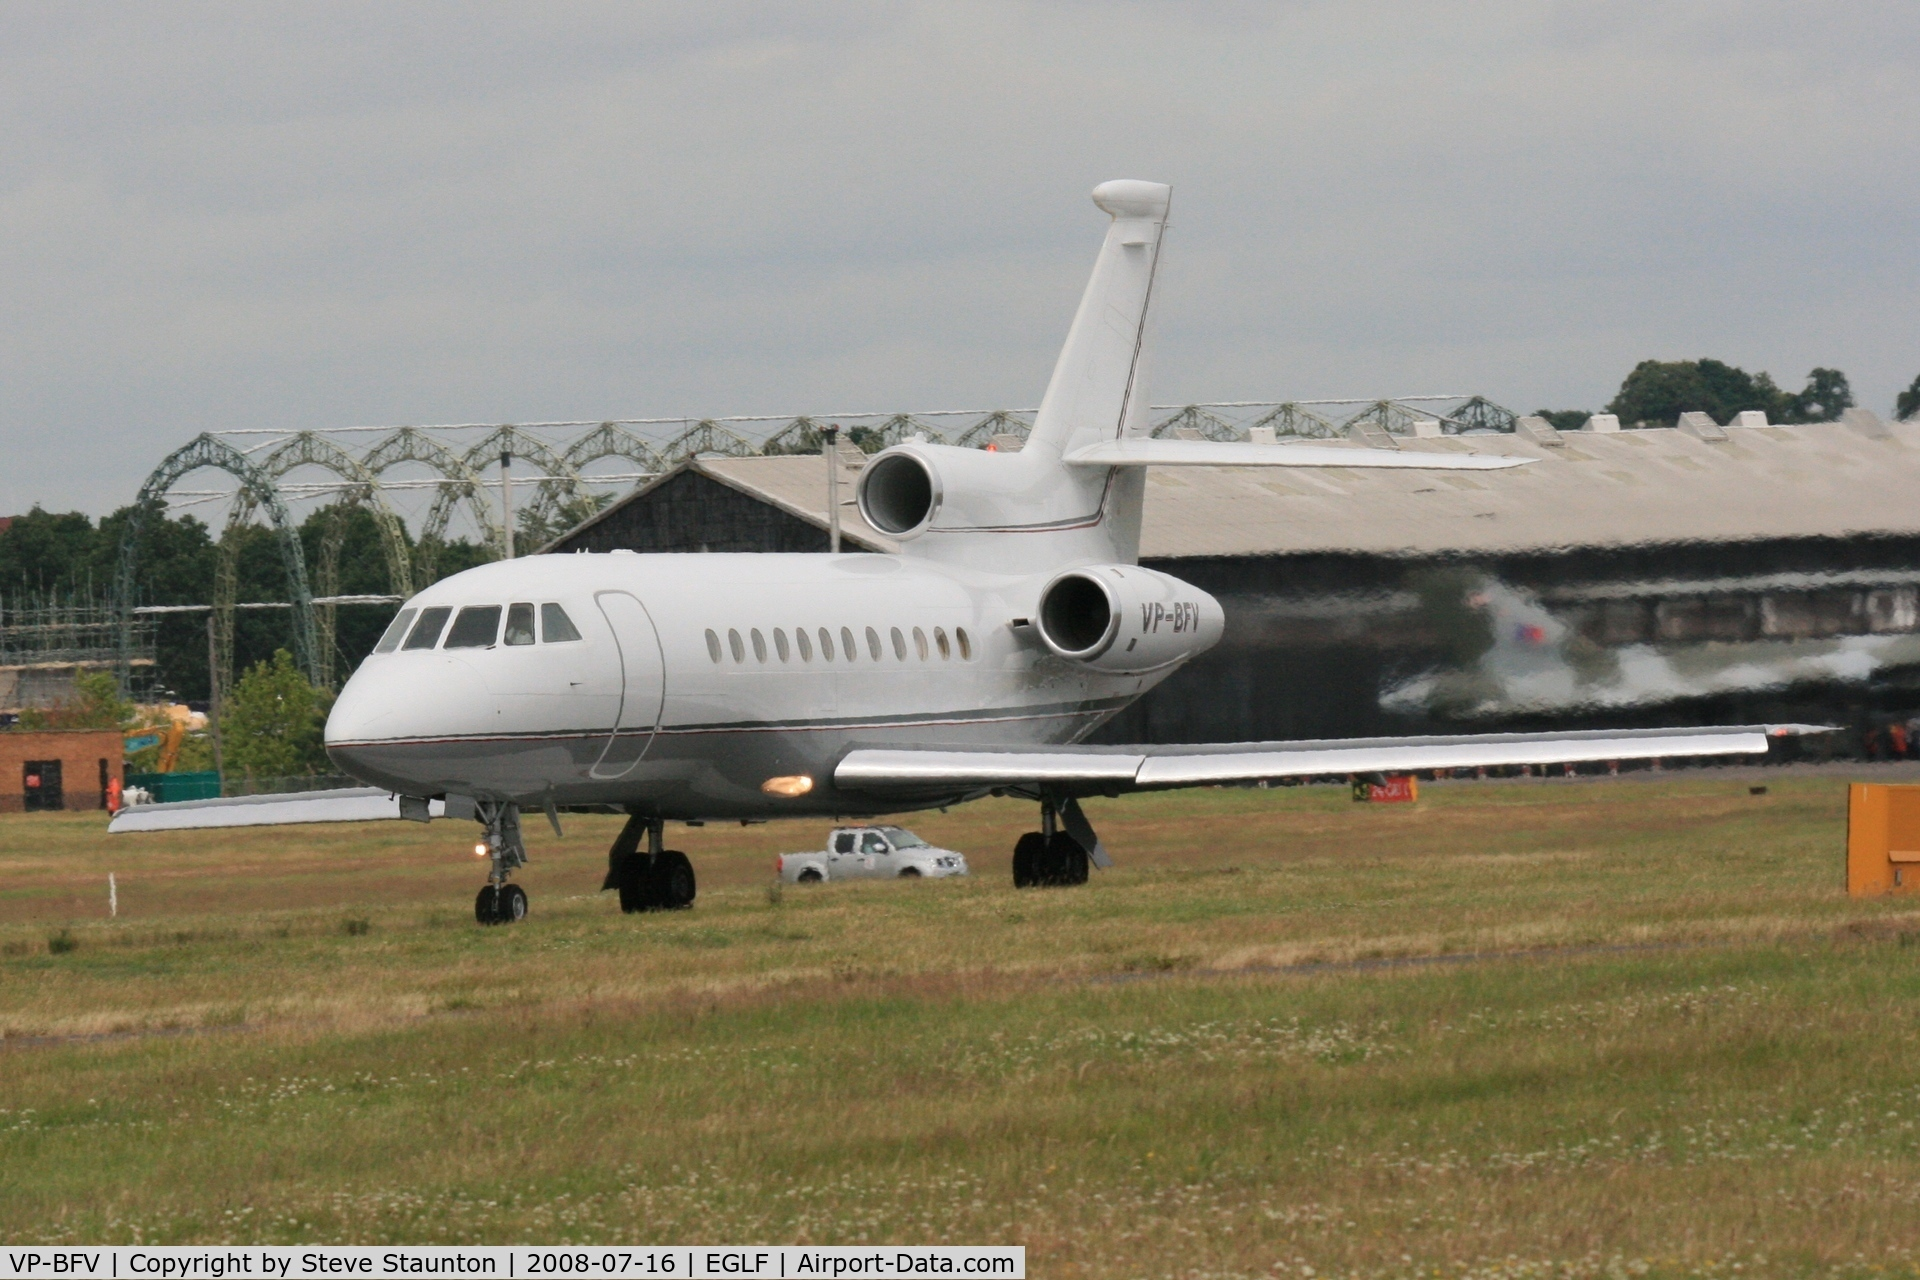 VP-BFV, 2002 Dassault Falcon 900EX C/N 111, Taken at Farnborough Airshow on the Wednesday trade day, 16th July 2009